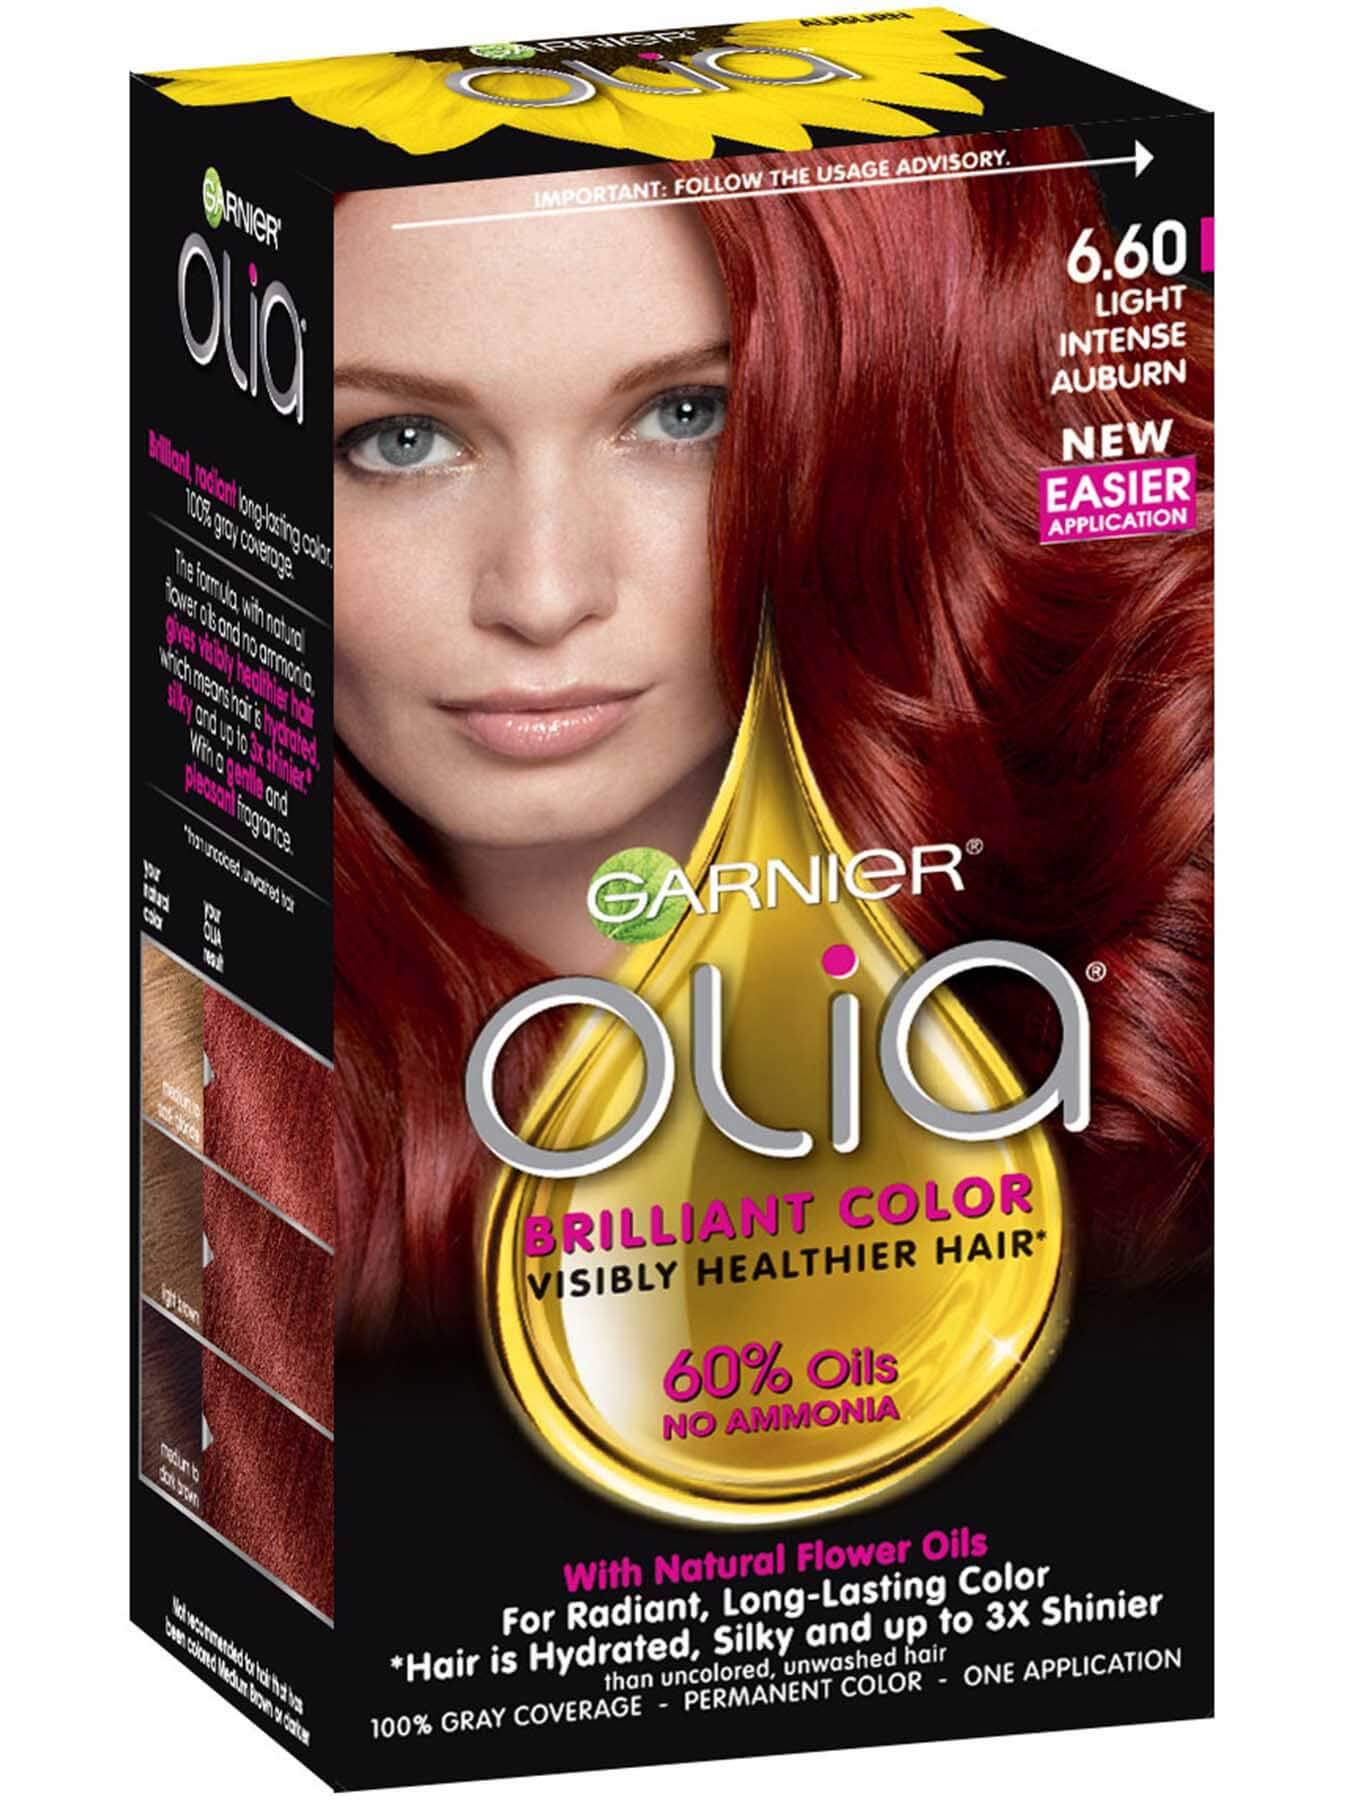 Permanent Semi Permanent Temporary Auburn Hair Color Garnier